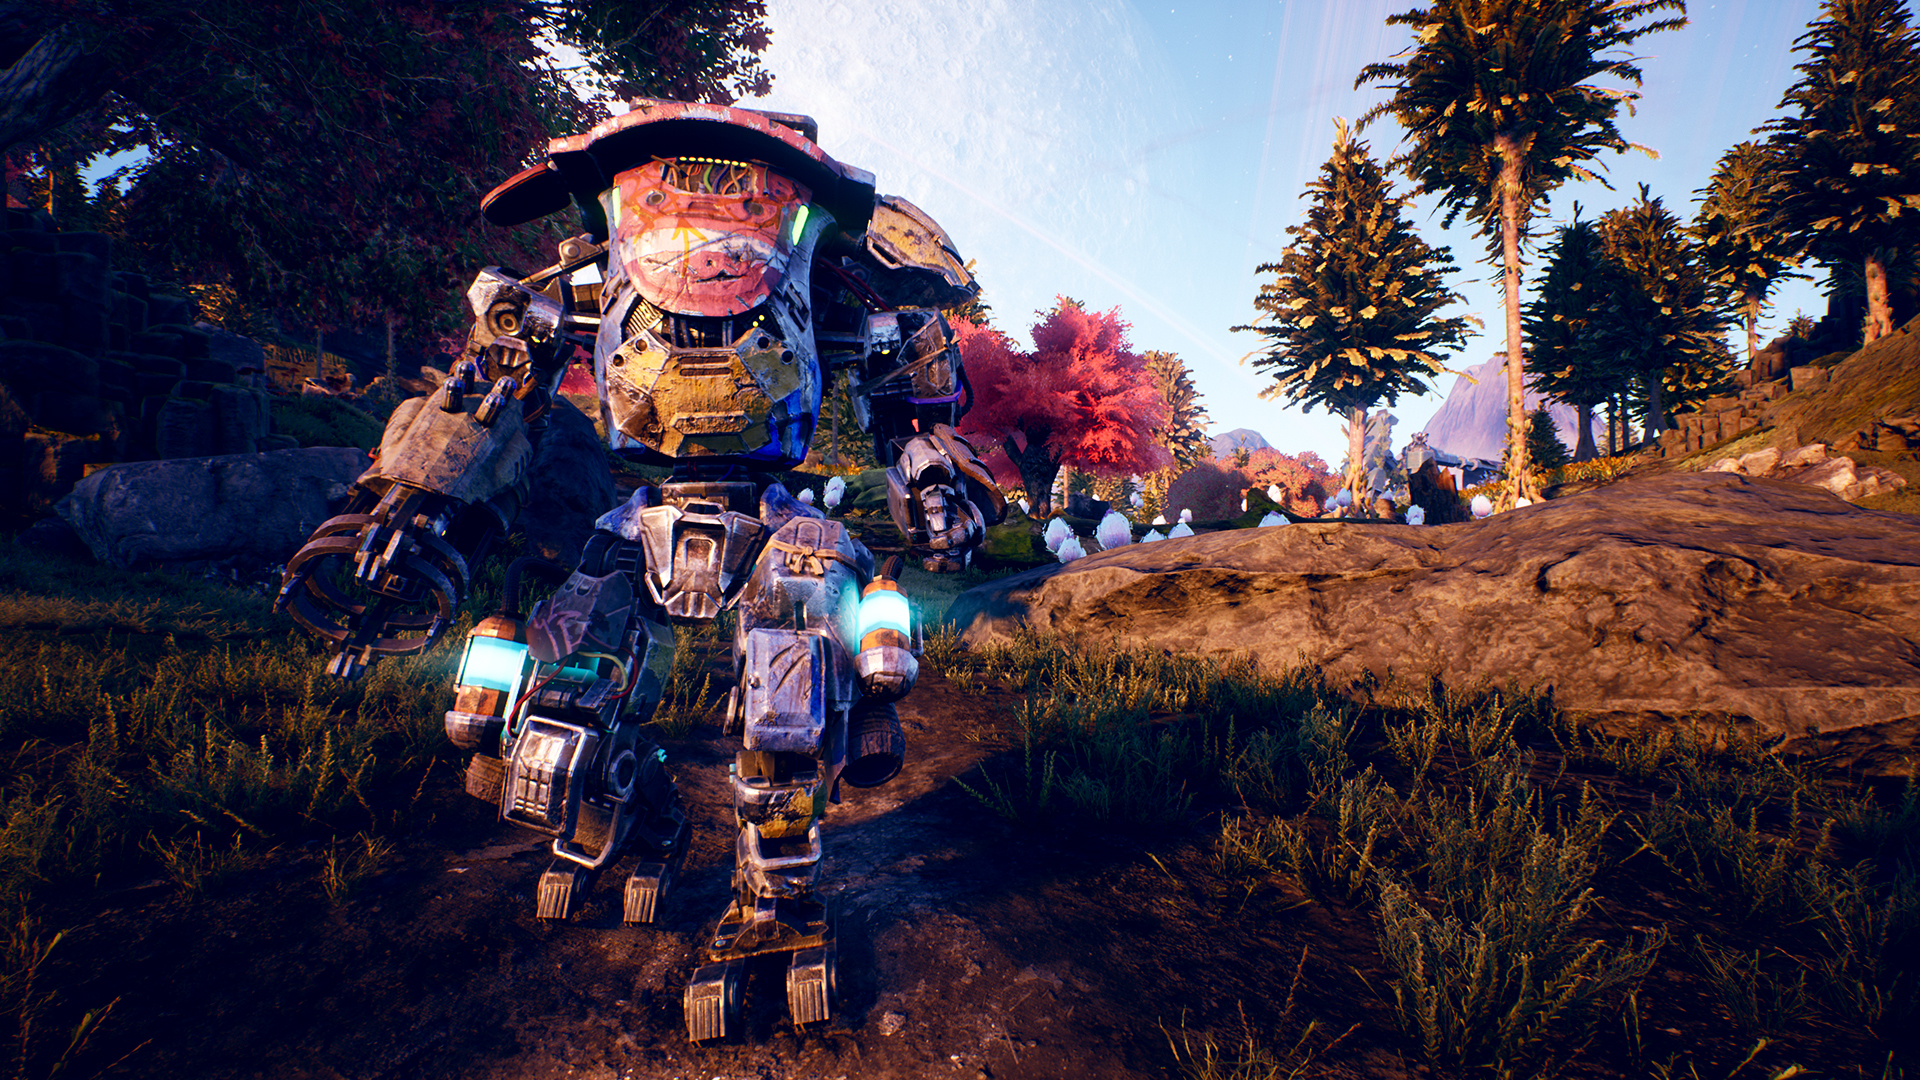 Epic locks down more store exclusives, including Obsidian's The Outer Worlds, Remedy's Control